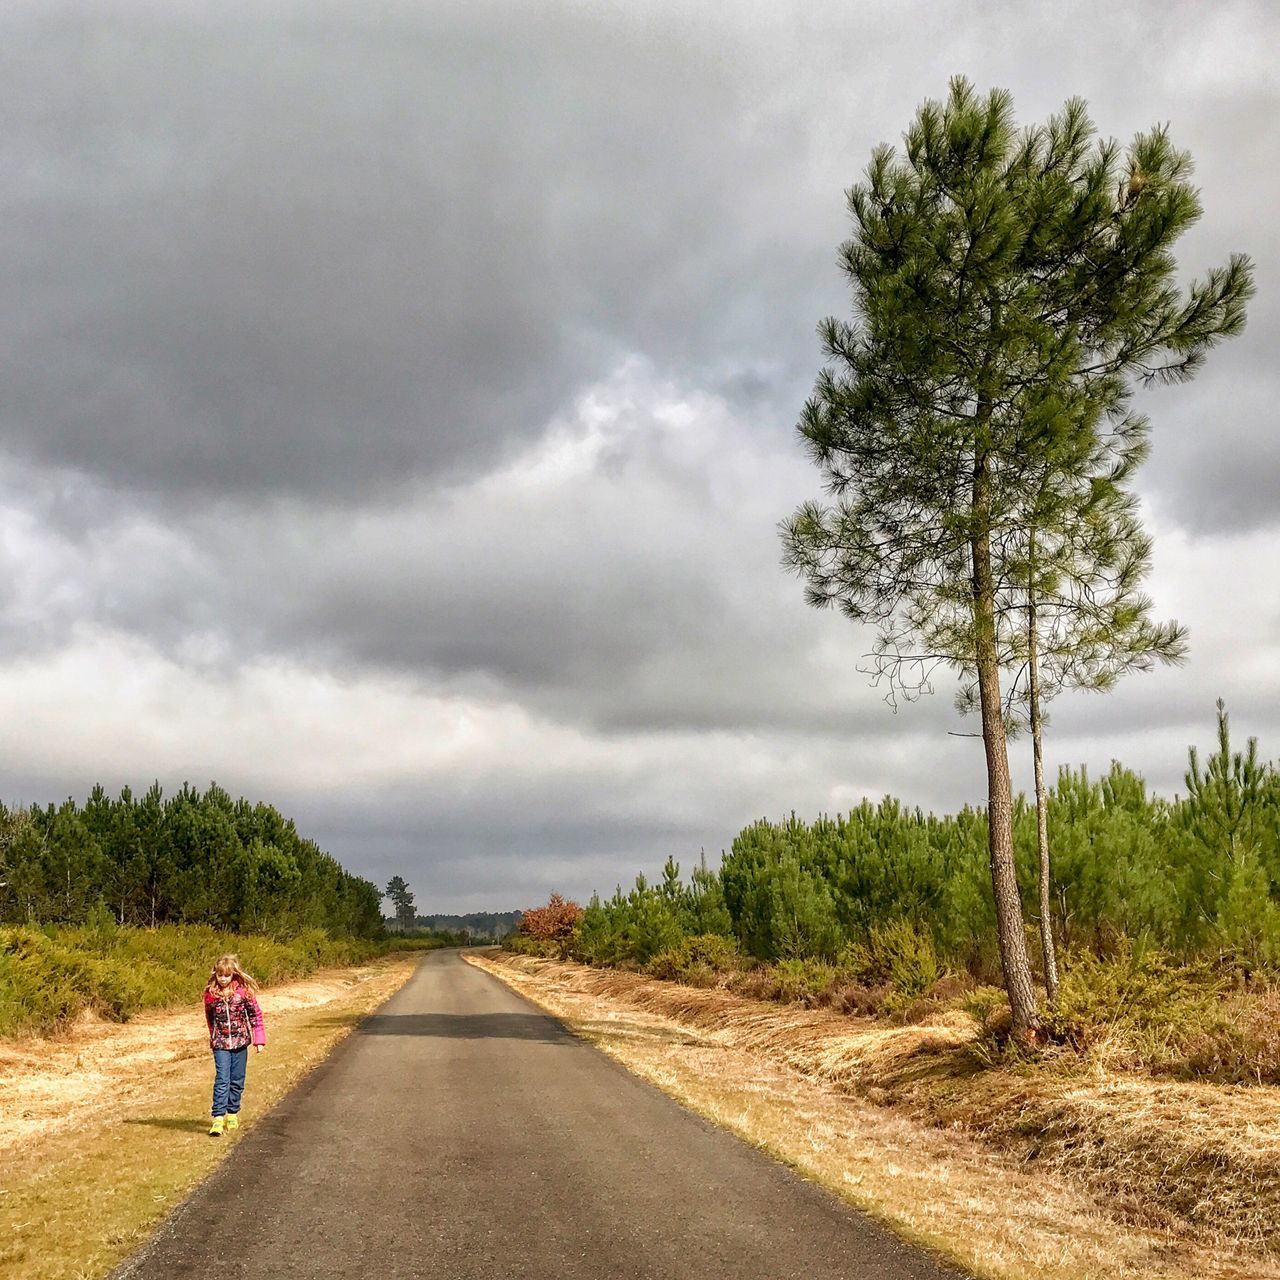 Little Ride in the Landes Region 😀 South West of France Photooftheday Landscape Road Tree Beauty In Nature Nature Iphoneonly Travel Destinations Outofthephone Iphonephotography EyeEm IPhoneography Moment Sky The Way Forward Snapseed Tranquility Gourbera Scenics Outdoors